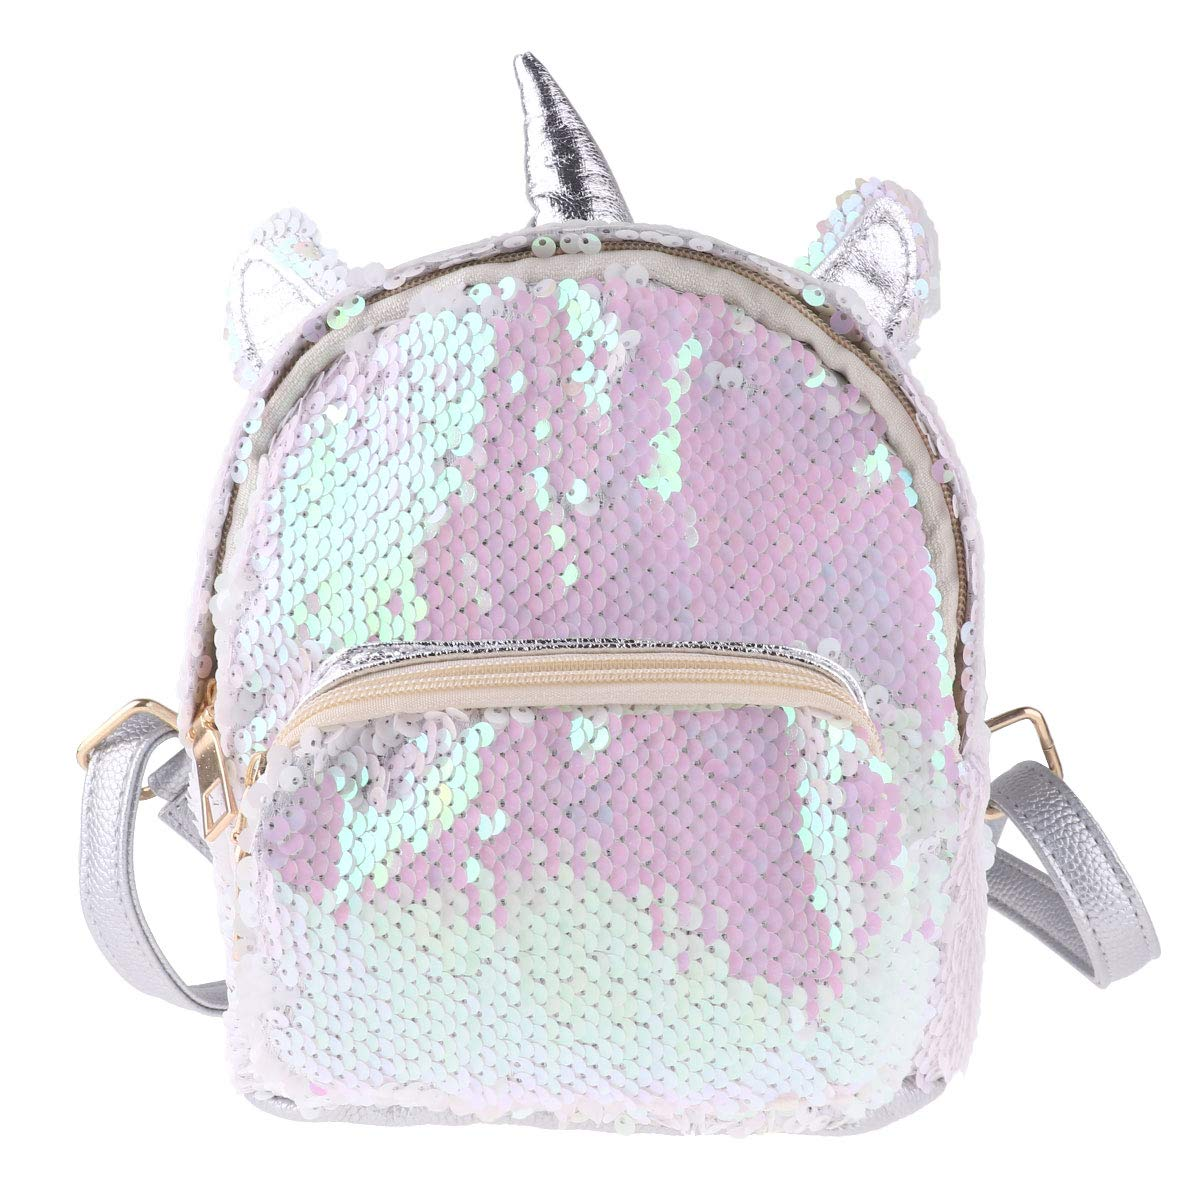 Amazon.com | Freebily Girls Mini Cute Dazzling Glittery Sequins PU Backpack Daypack Shoulder Travel Bag Schoolbag Satchel Silver One Size | Kids Backpacks